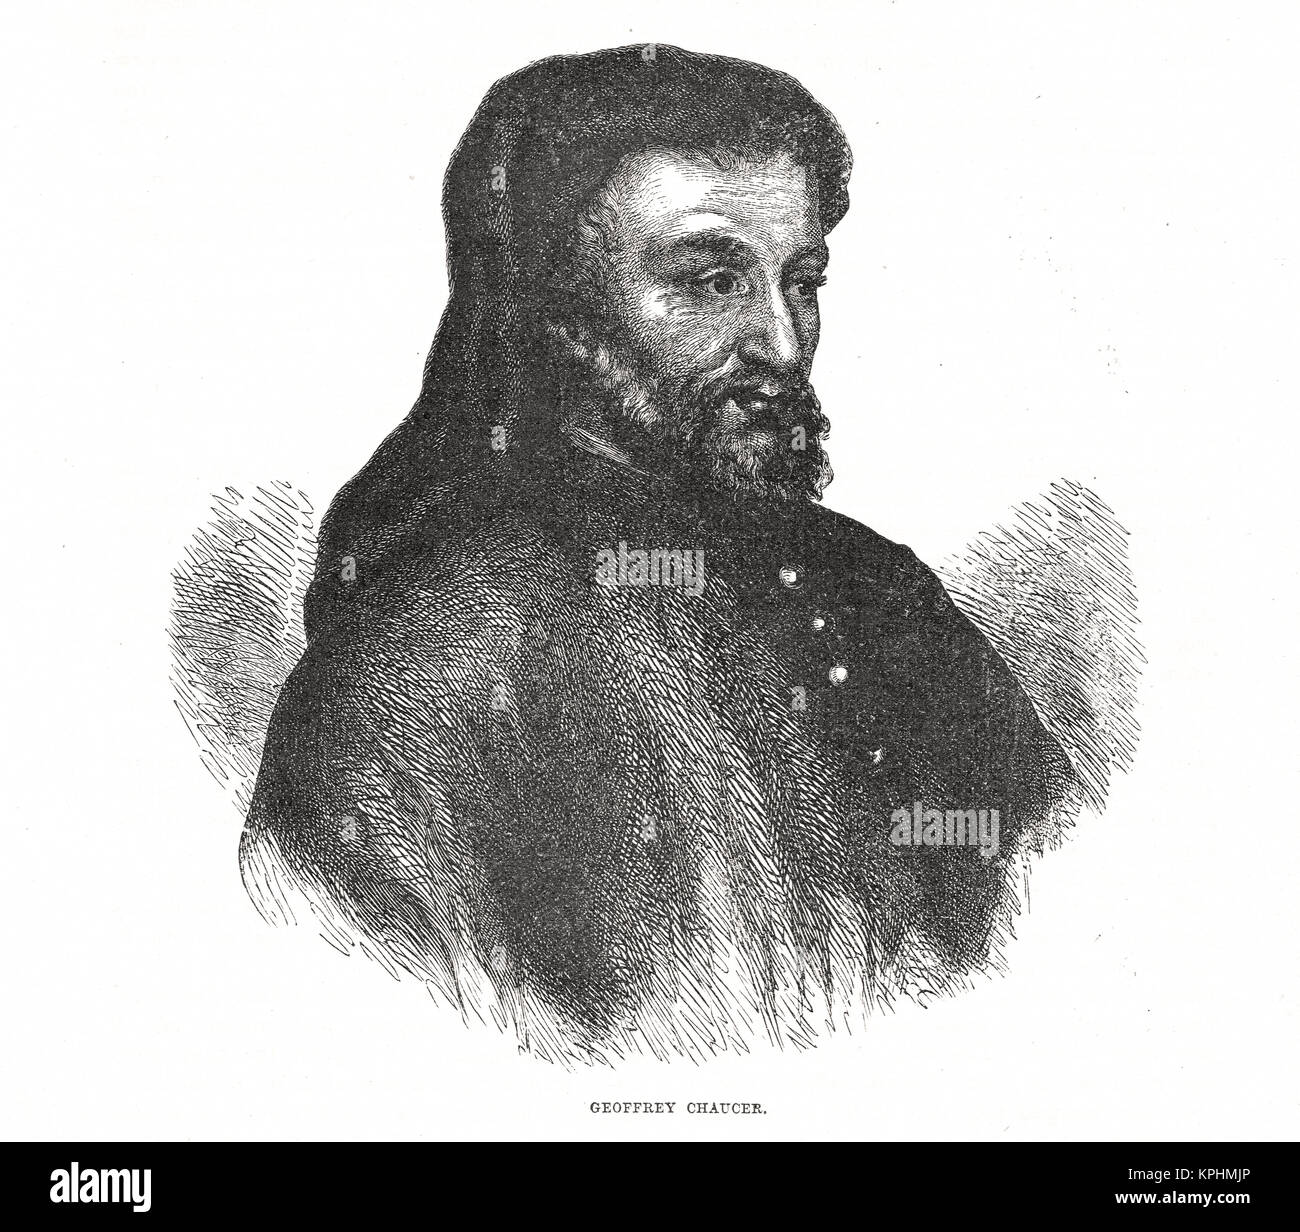 Geoffrey Chaucer English poet, 1343-1400 - Stock Image